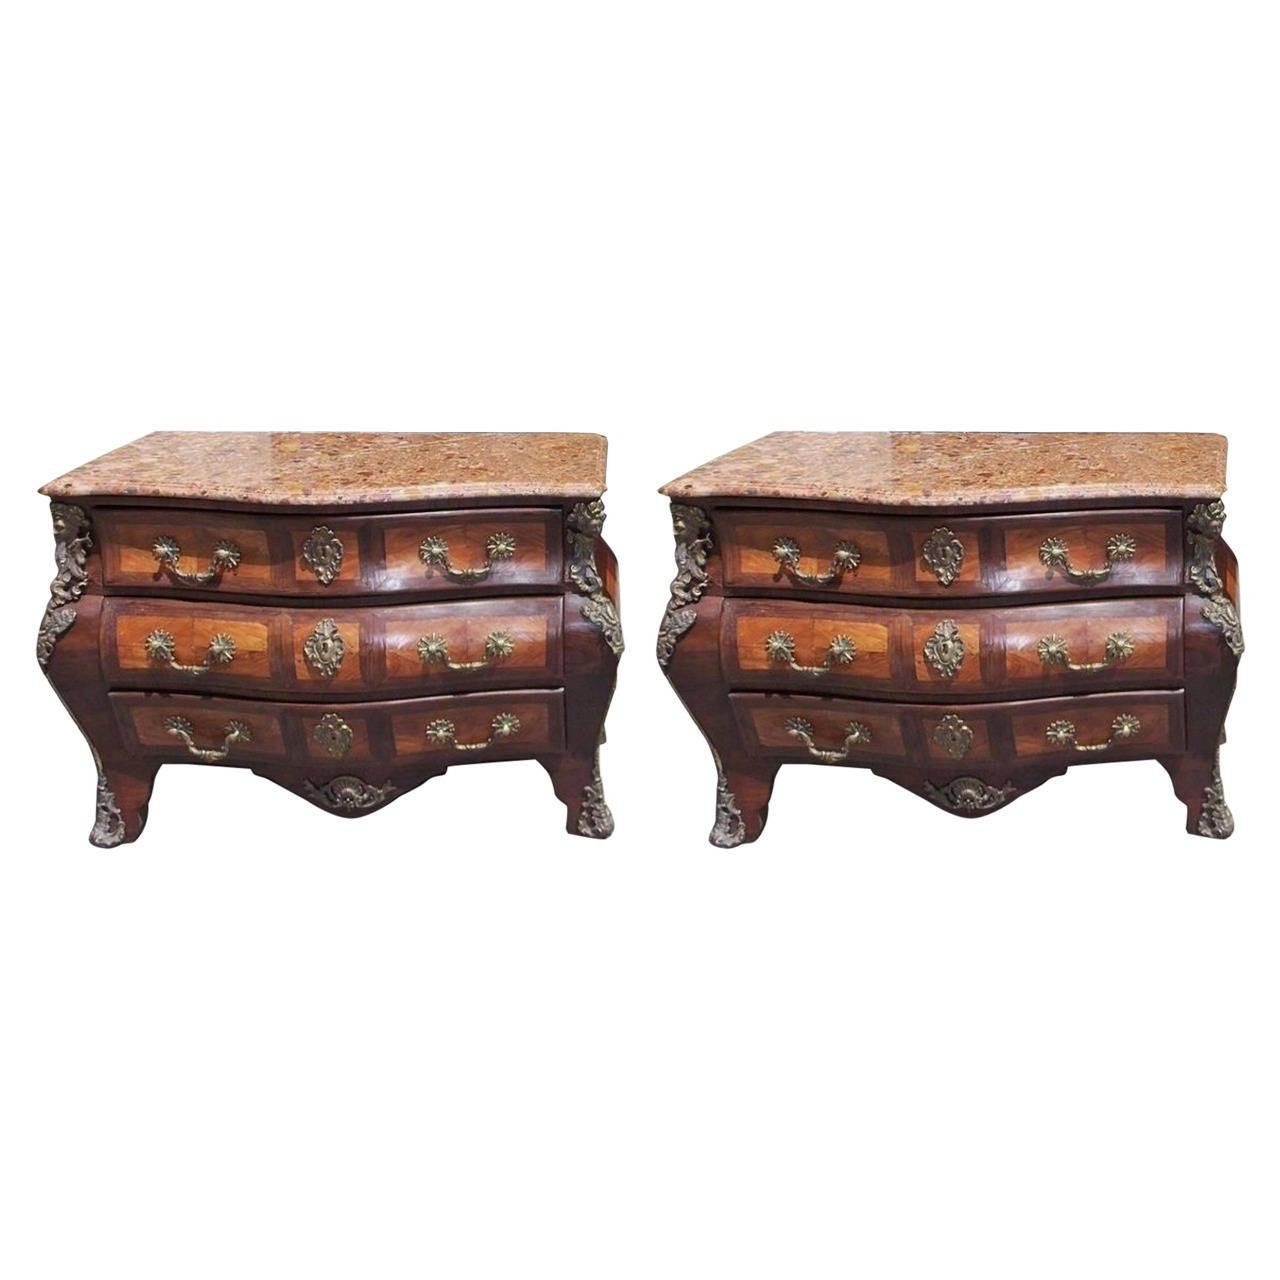 Pair of Italian Marble Top Ormolu Bombay Commodes, Circa 1870